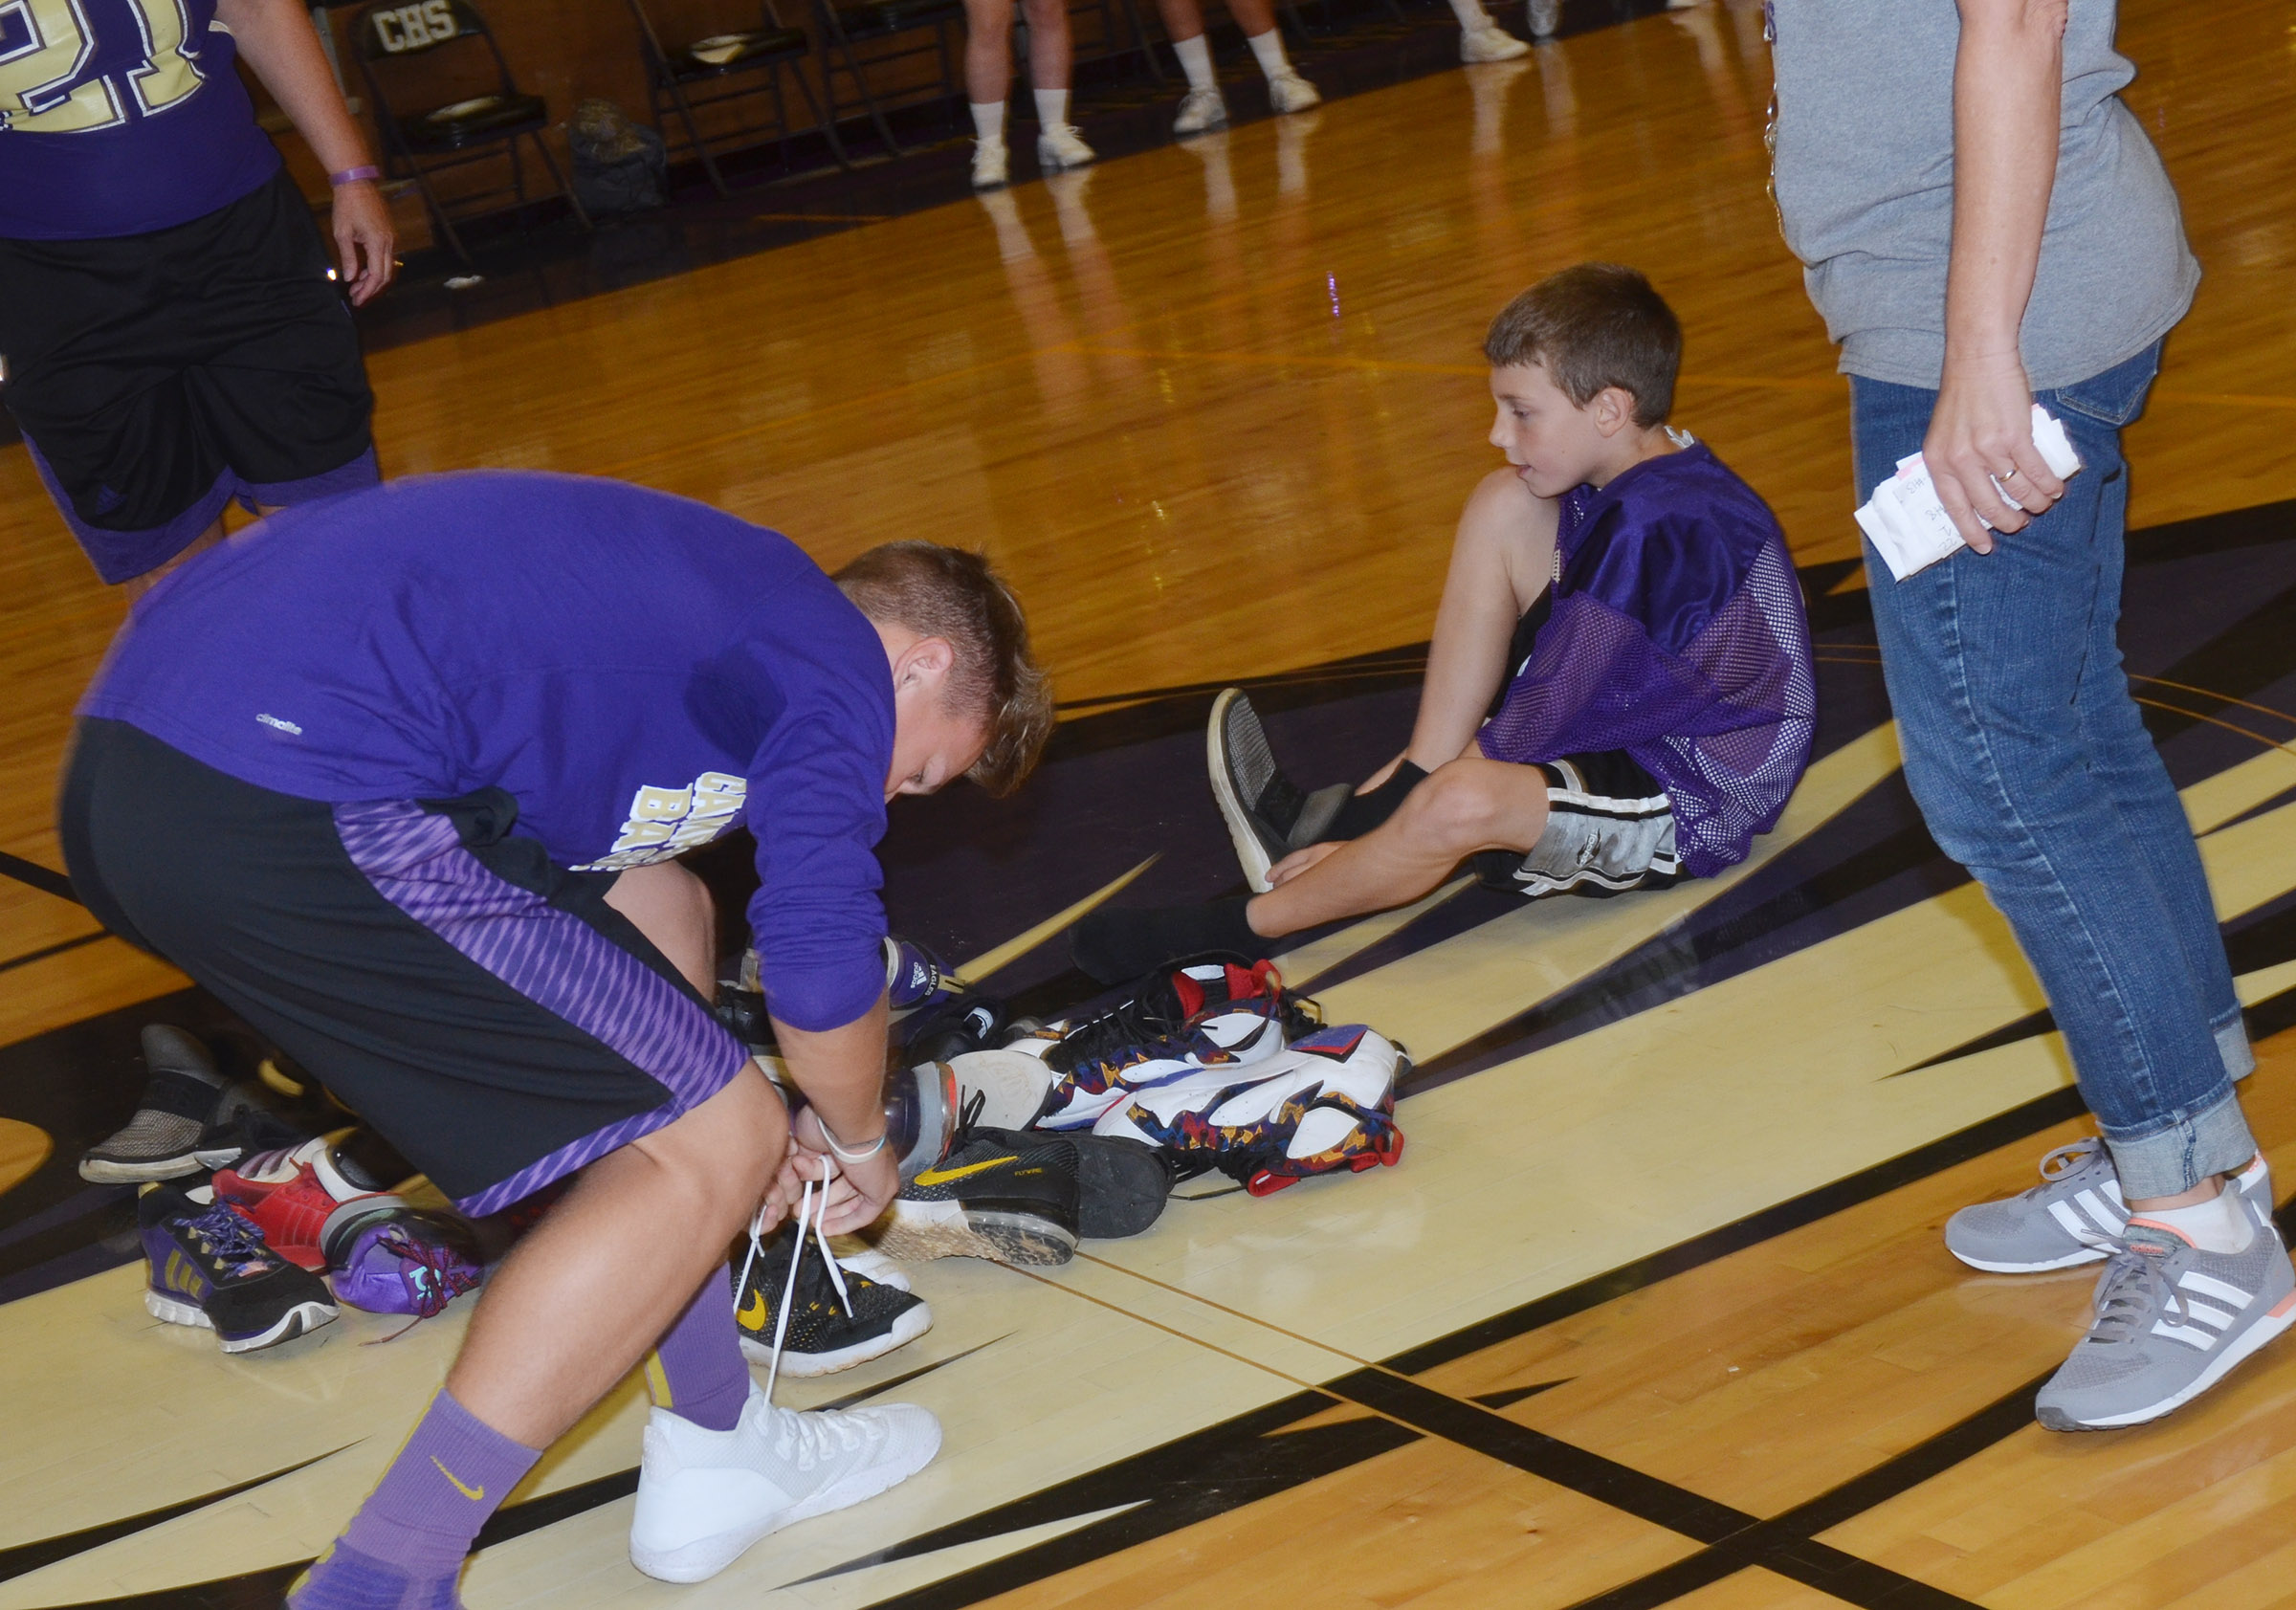 CHS freshman Blase Wheatley, at left, and CES third-grader Aidan Wilson compete in the shoe mountain game.